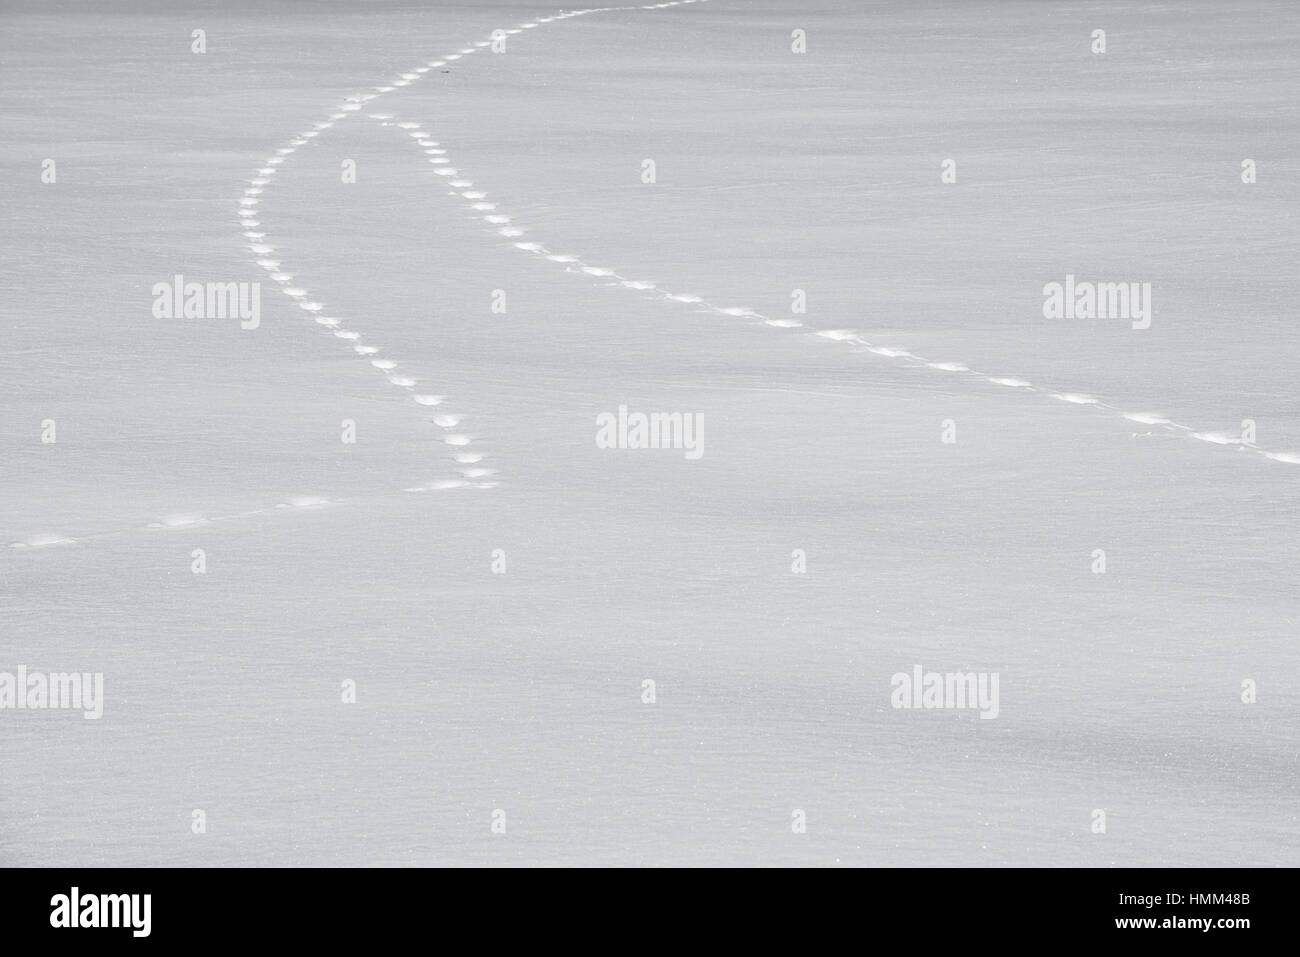 Two animal tracks merging in snow covered field in winter - Stock Image